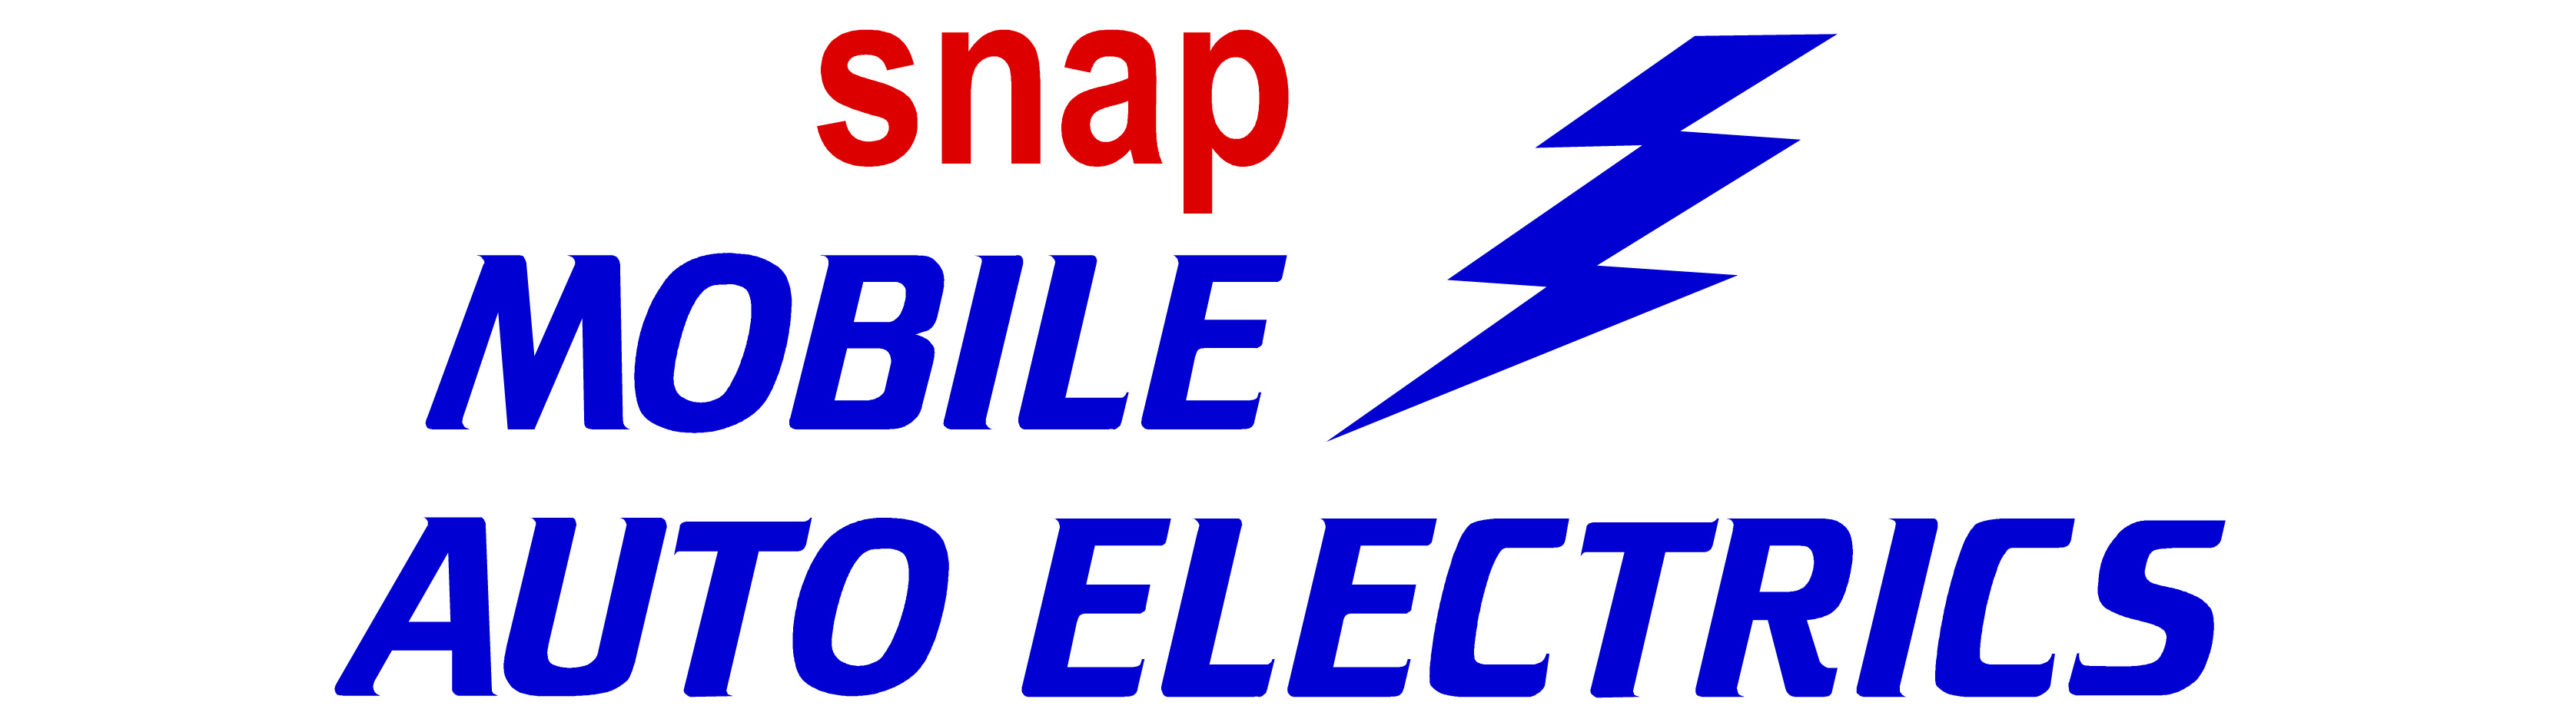 Snap Mobile Auto Electrics